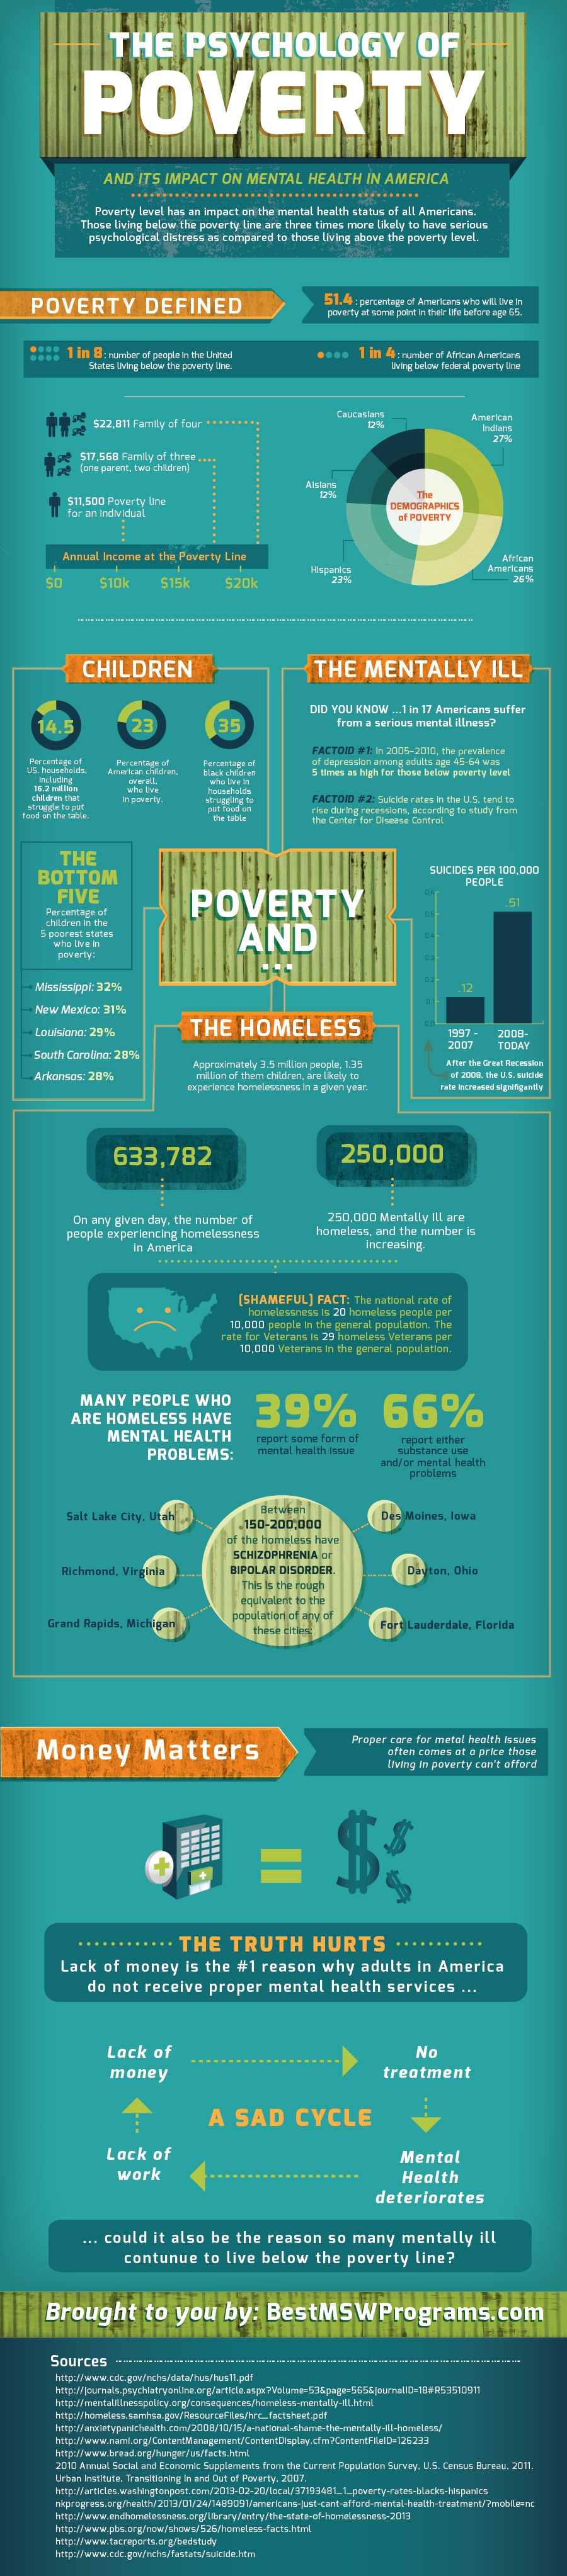 Poverty on Mental Health-Infographic